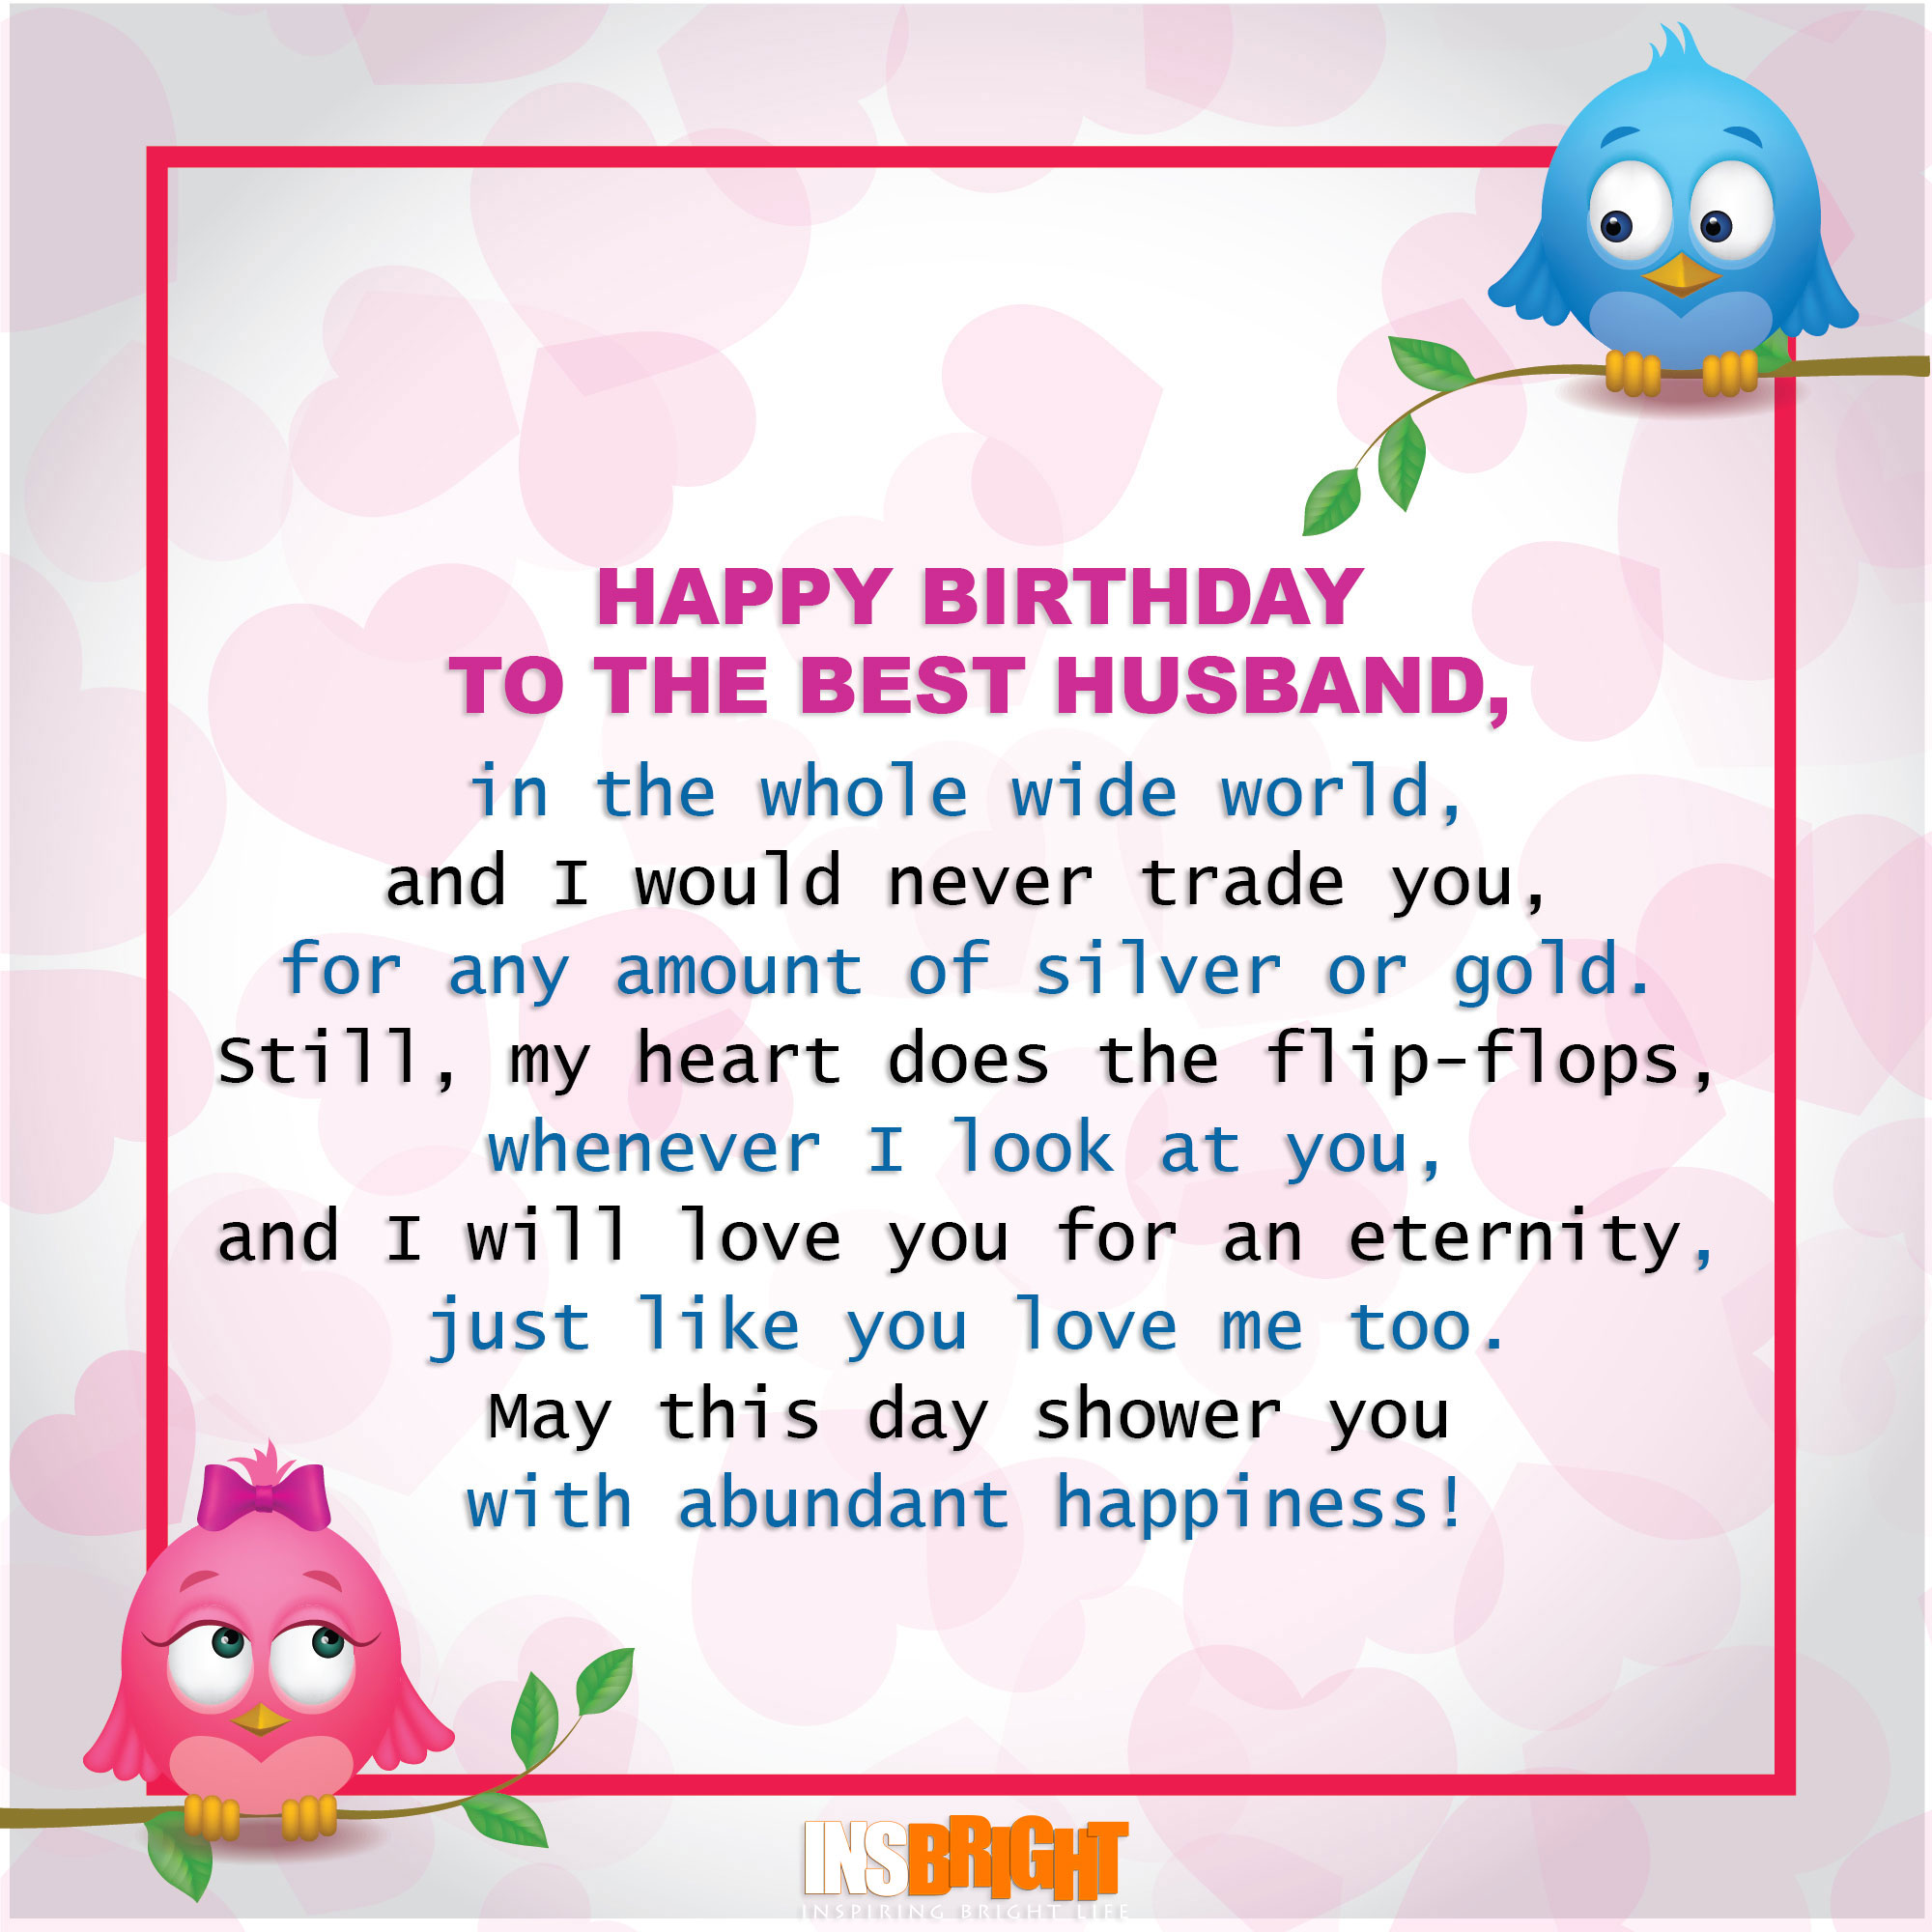 Funny Birthday Love Poems For Him